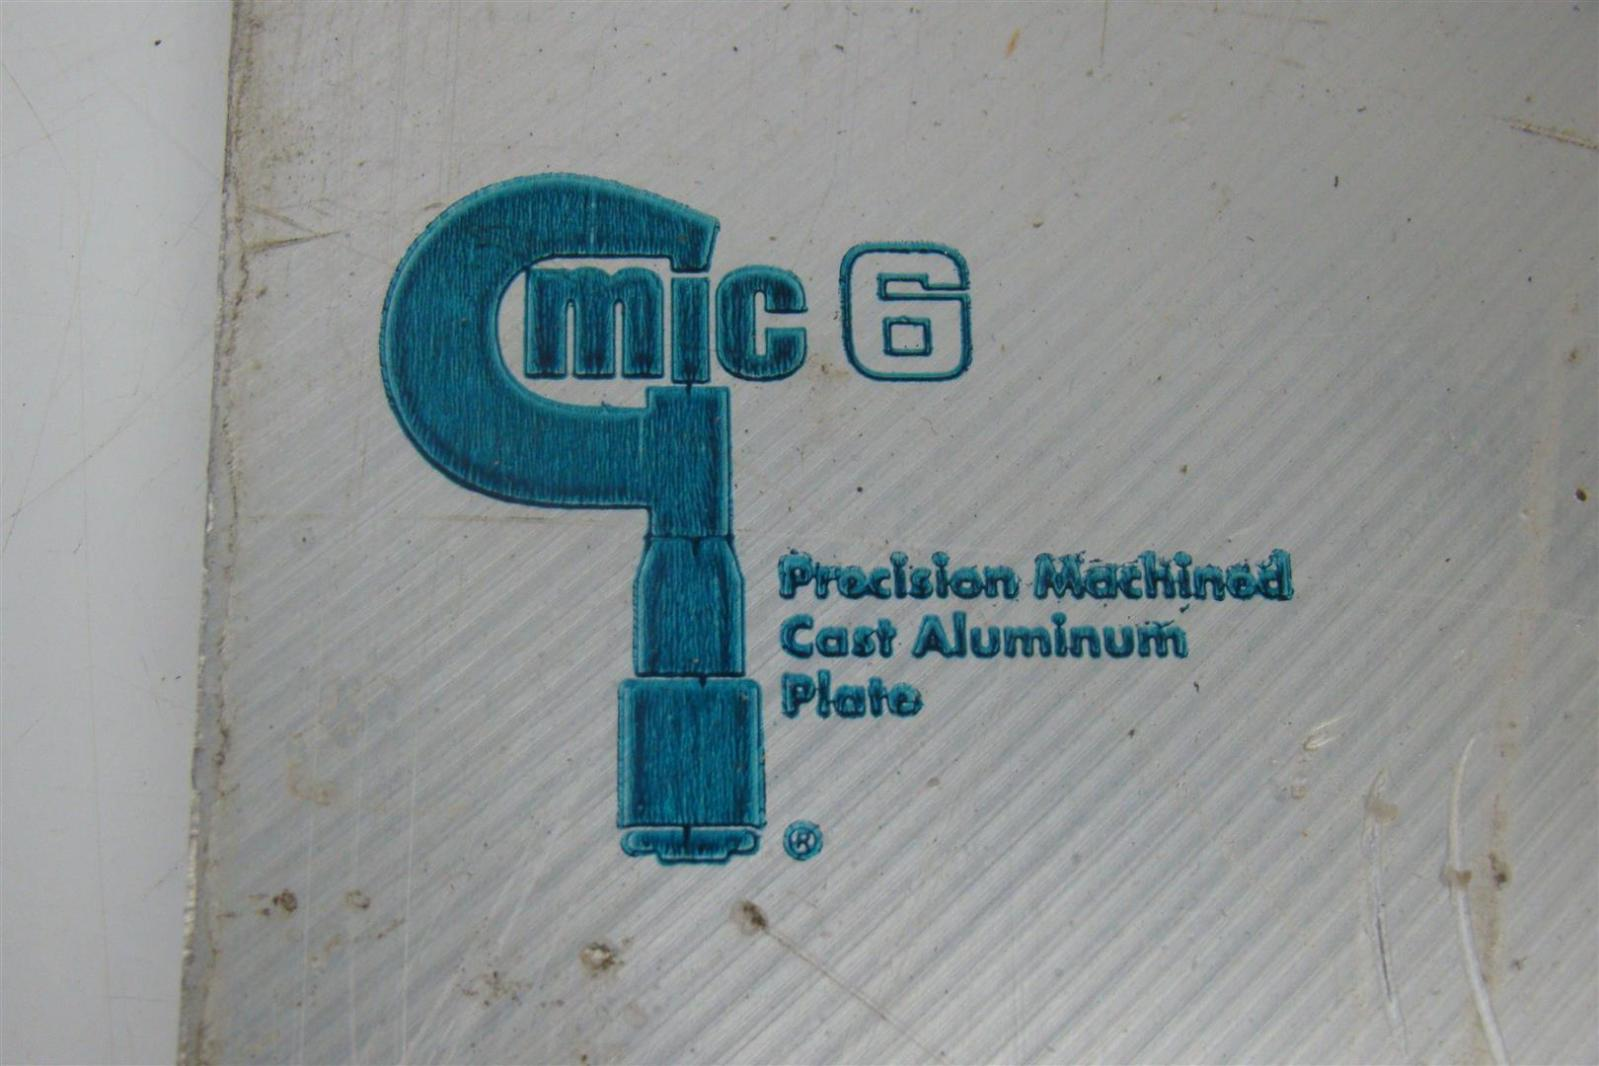 mic machine tools